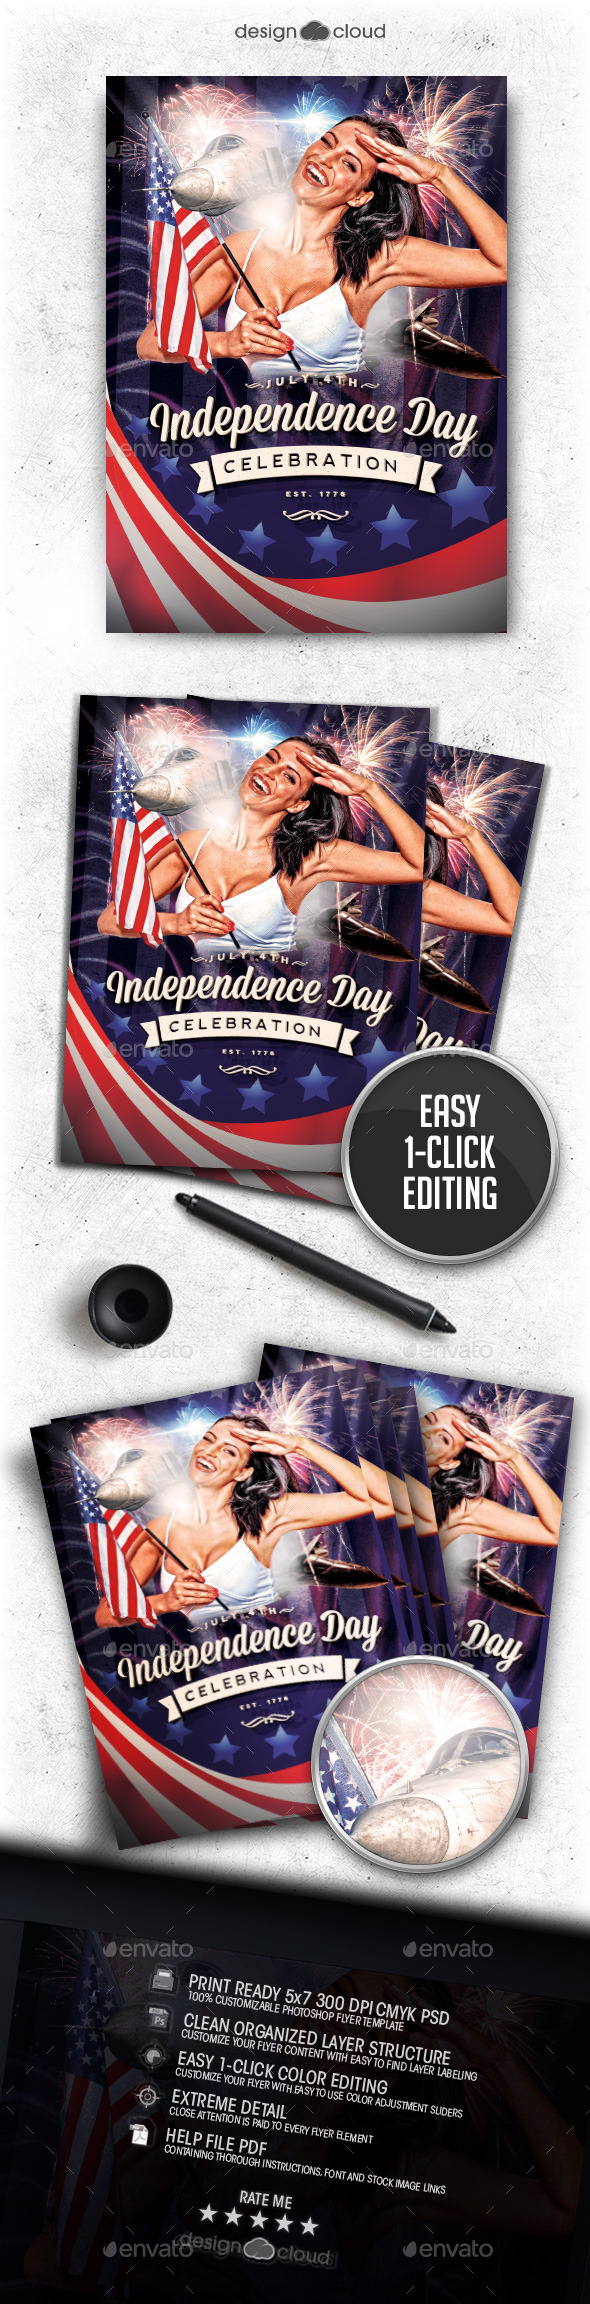 Independence Day - July 4 Vol 3 Flyer Template - Holidays Events